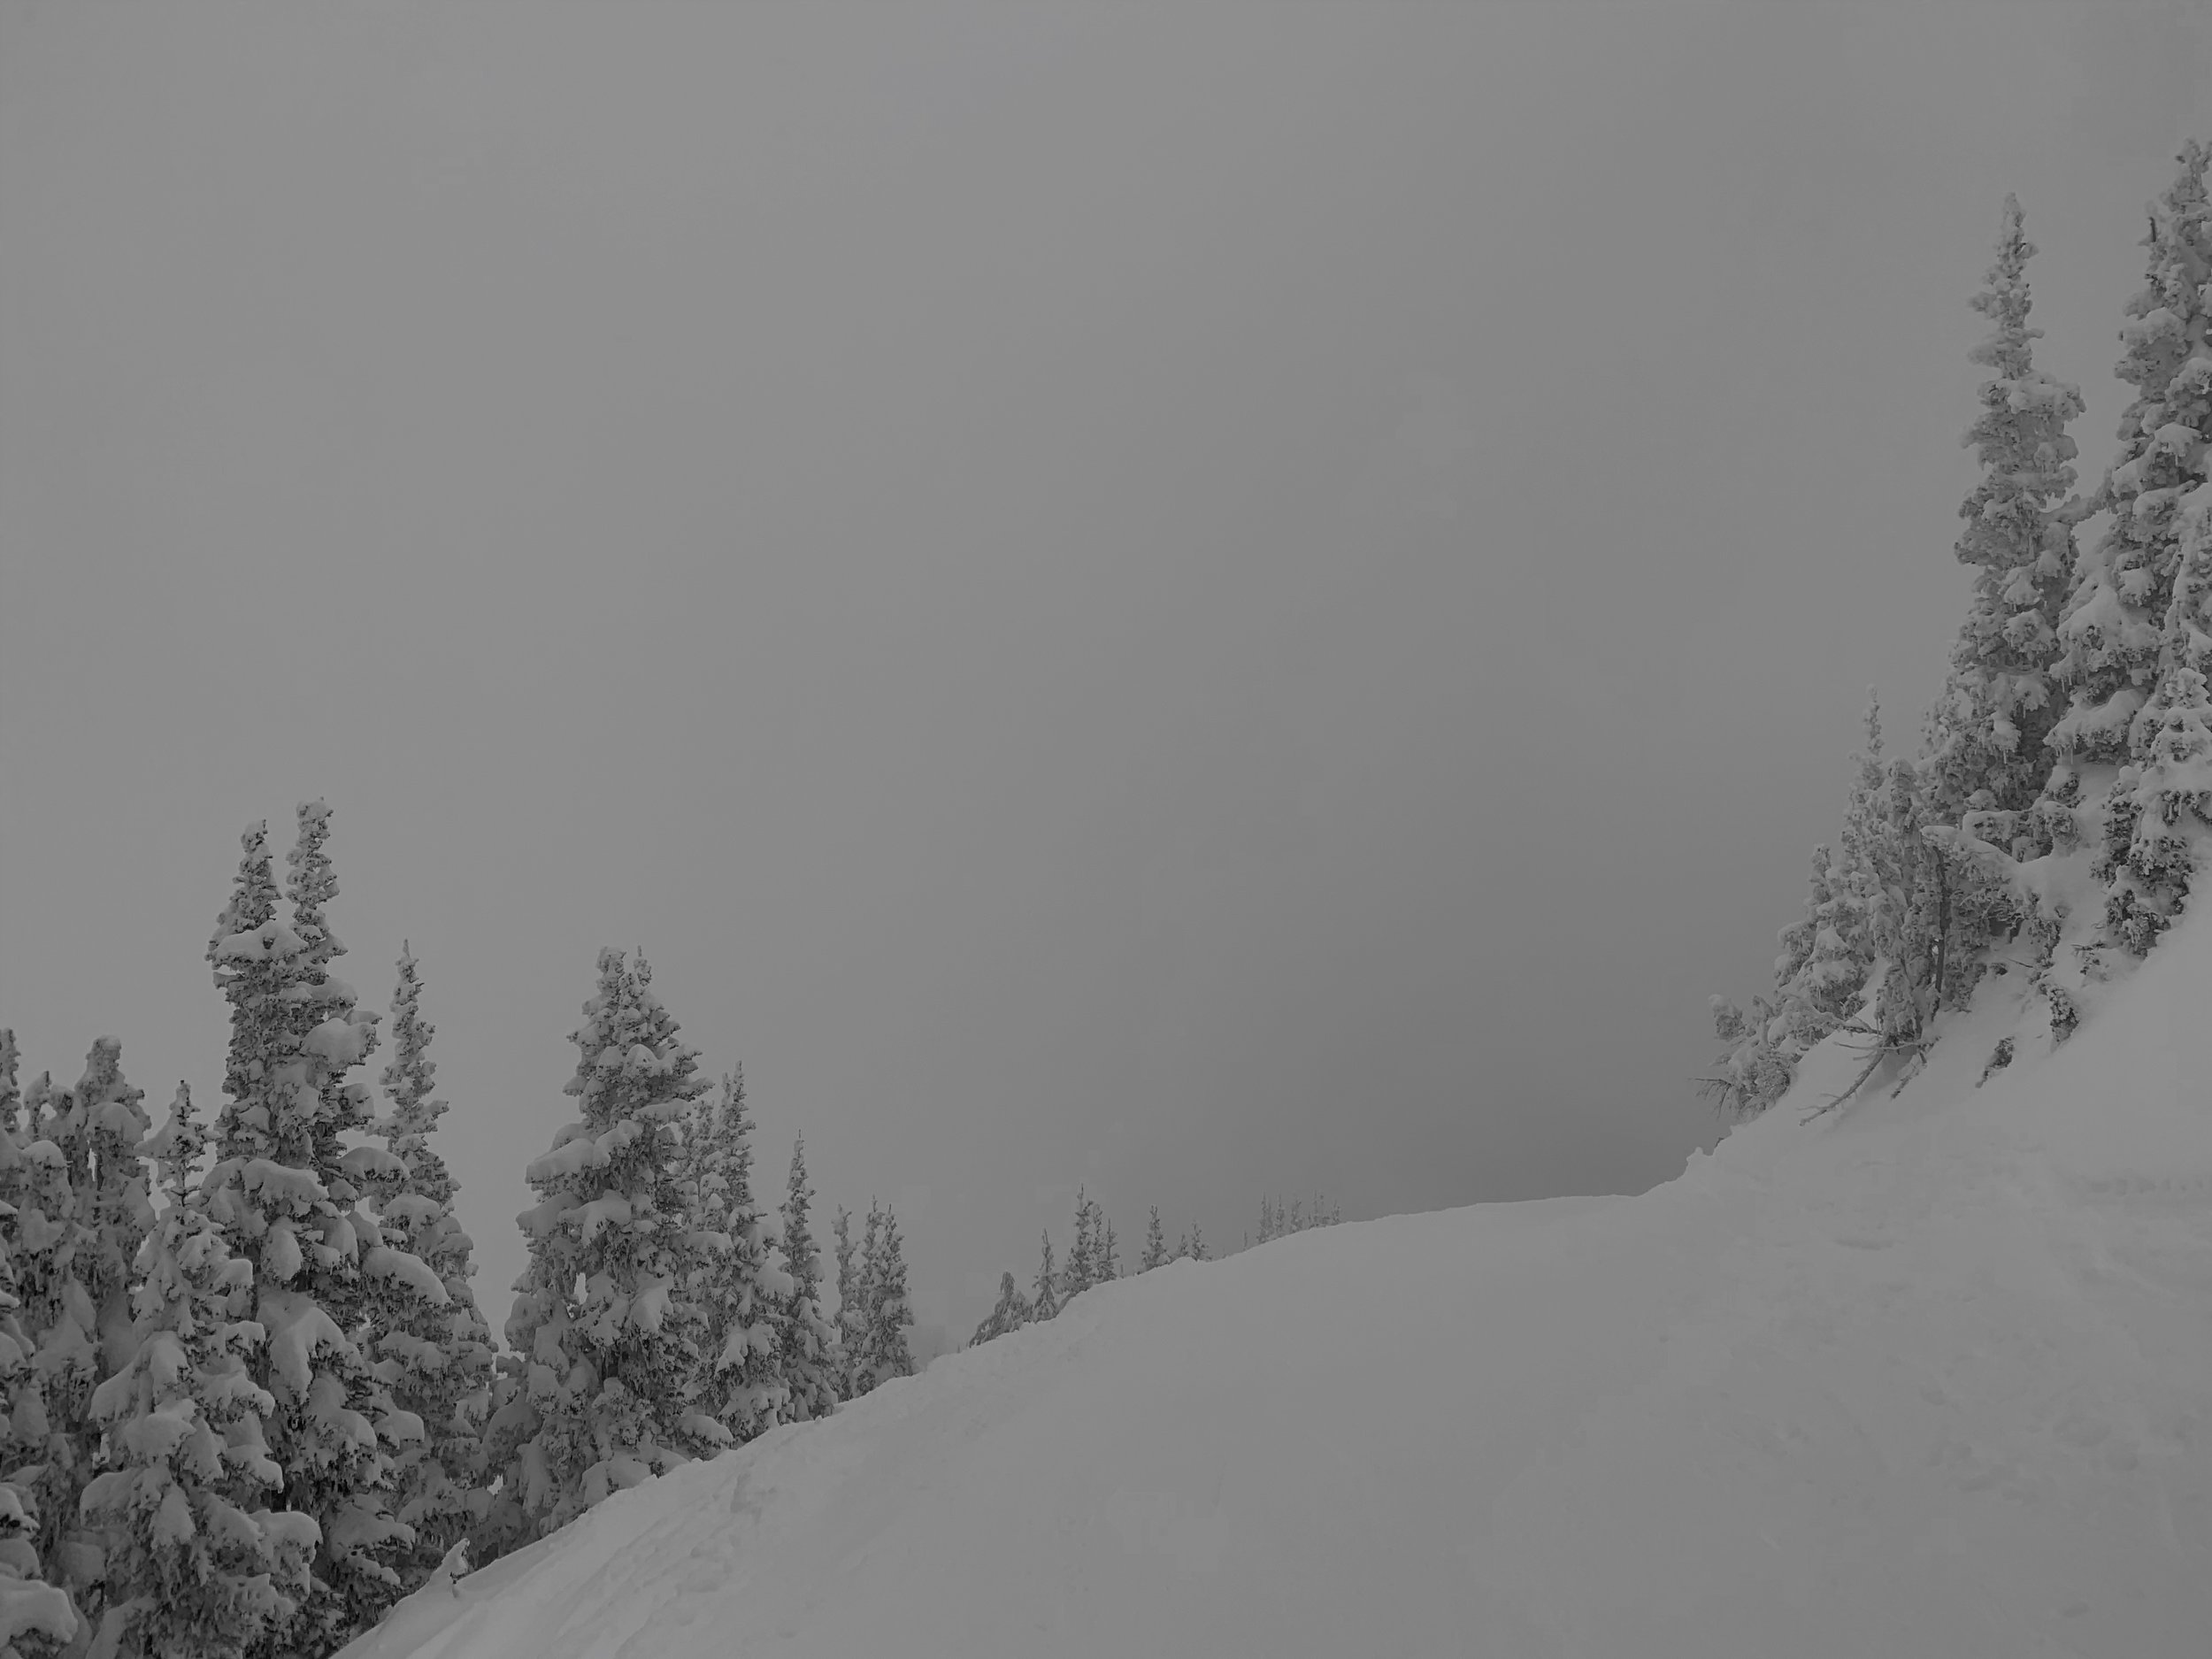 View of Powder Bowl